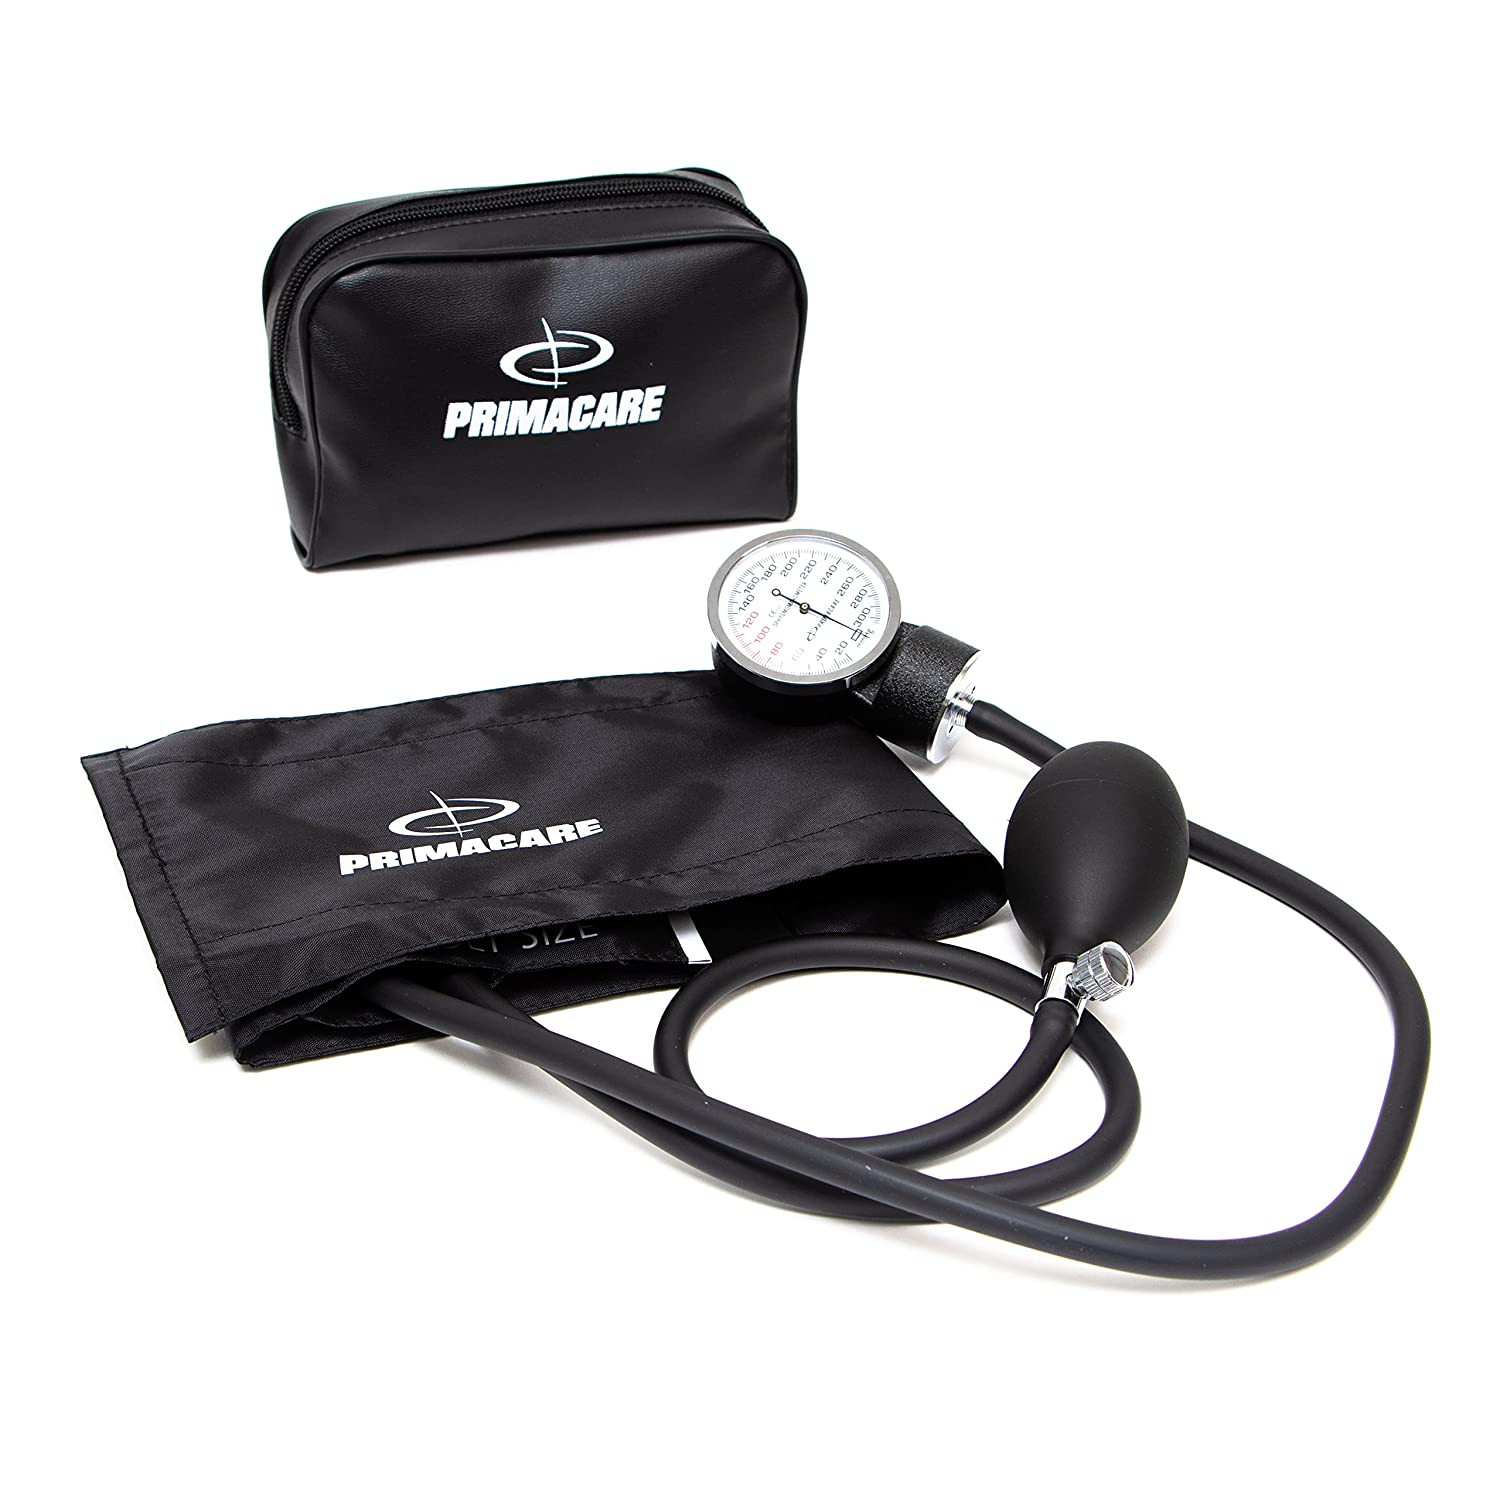 Primacare CSDS-9192 Special Now free shipping price for a limited time Aneroid Sphygmomanometer Cuf Adult-Size with